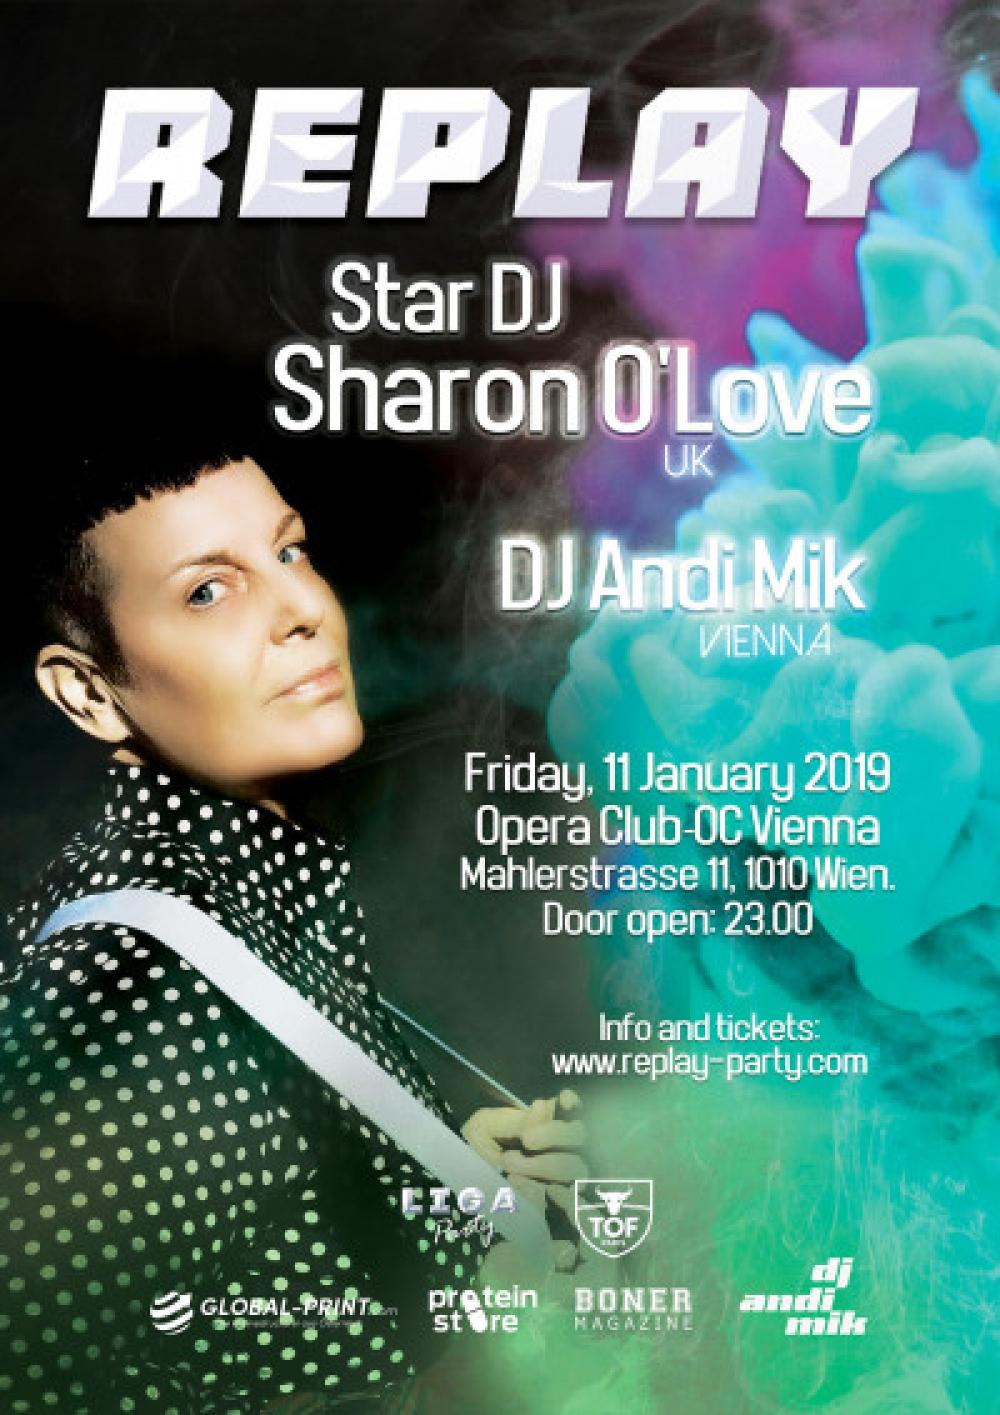 REPLAY ft. Star DJ Sharon O'Love (UK) & Andi Mik (AT) @ Opera Club - OC Vienna